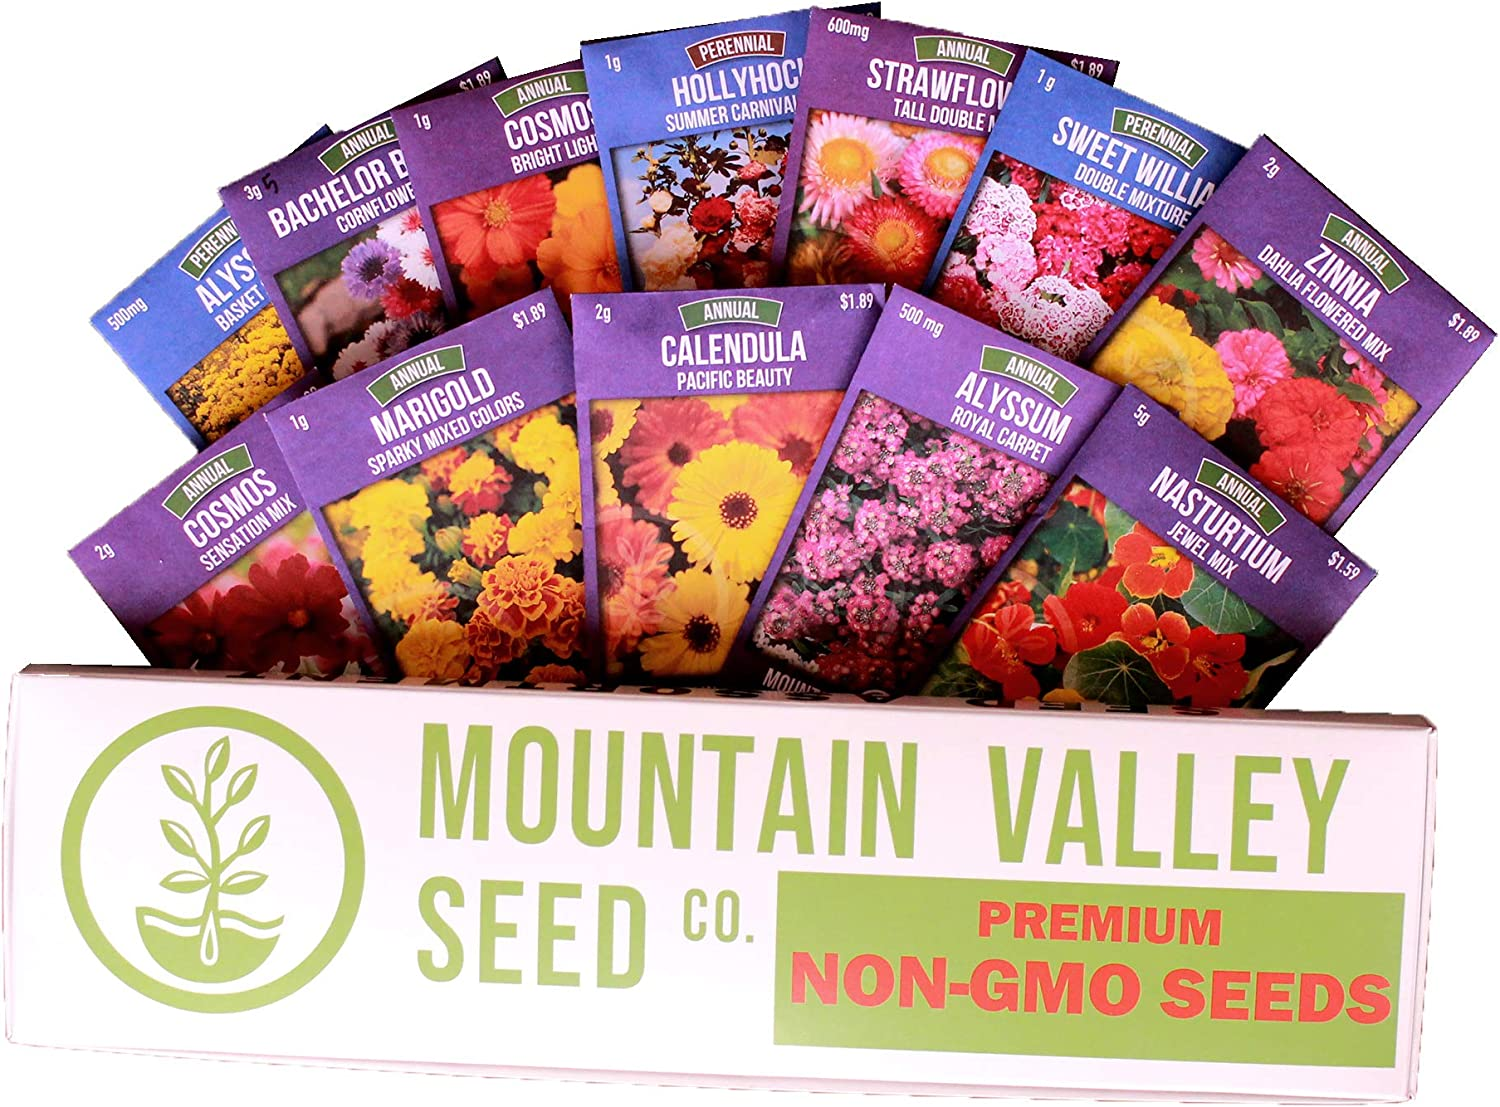 Annual Flower Garden Seed Collection - Deluxe Assortment - 12 Flower Gardening Seed Packets: Nasturtium, Hollyhock, Sweet William, Strawflower, More